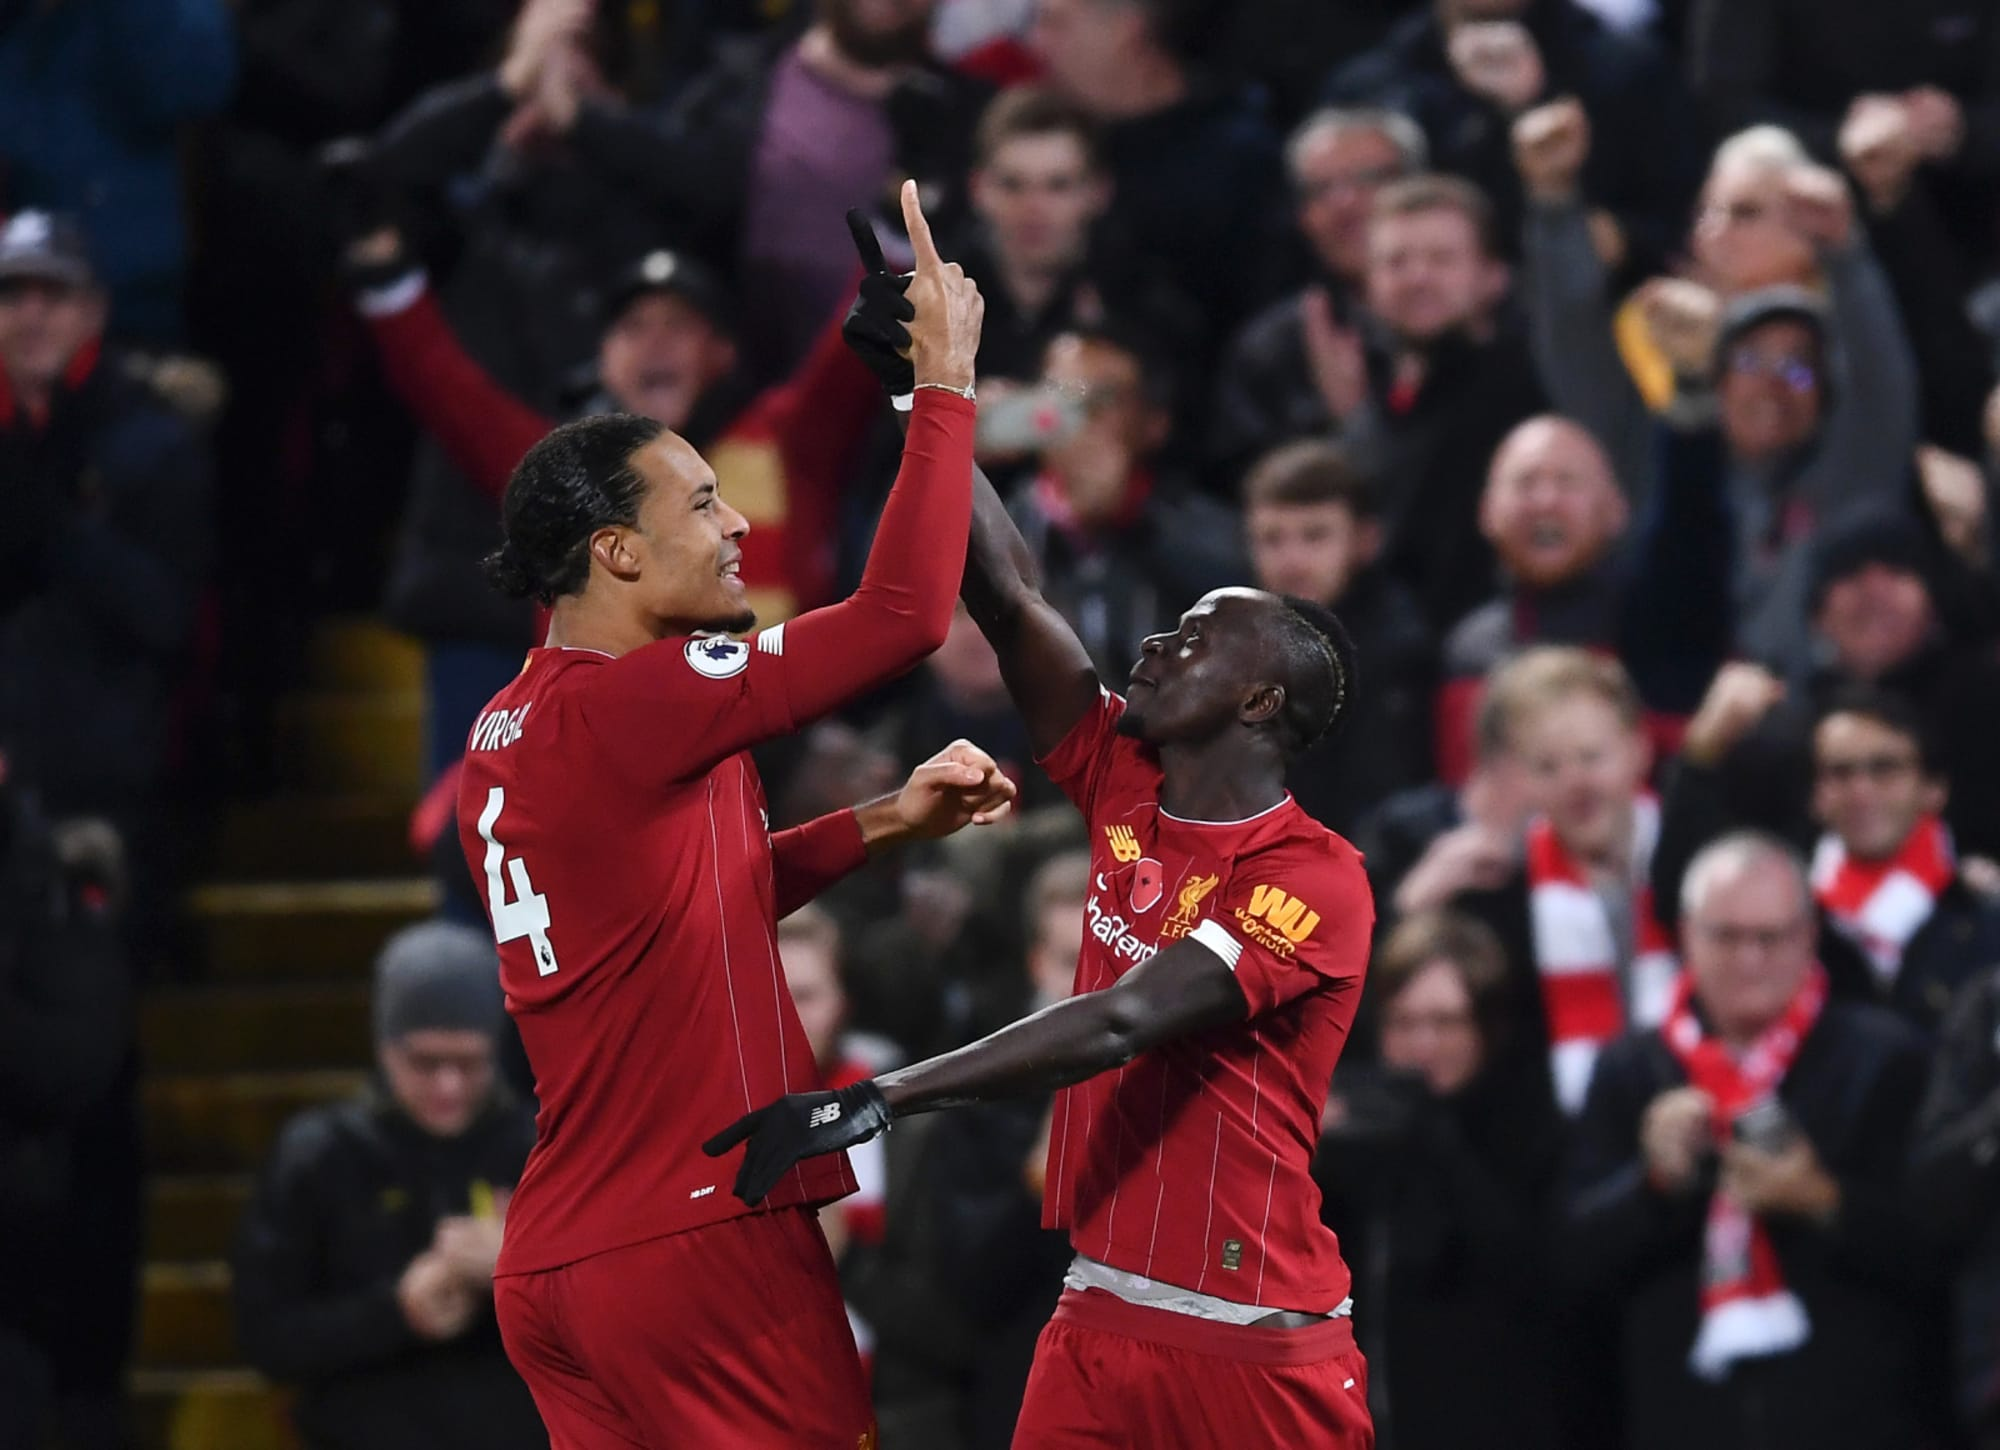 Liverpool vs Man City: The performance, not the result ...